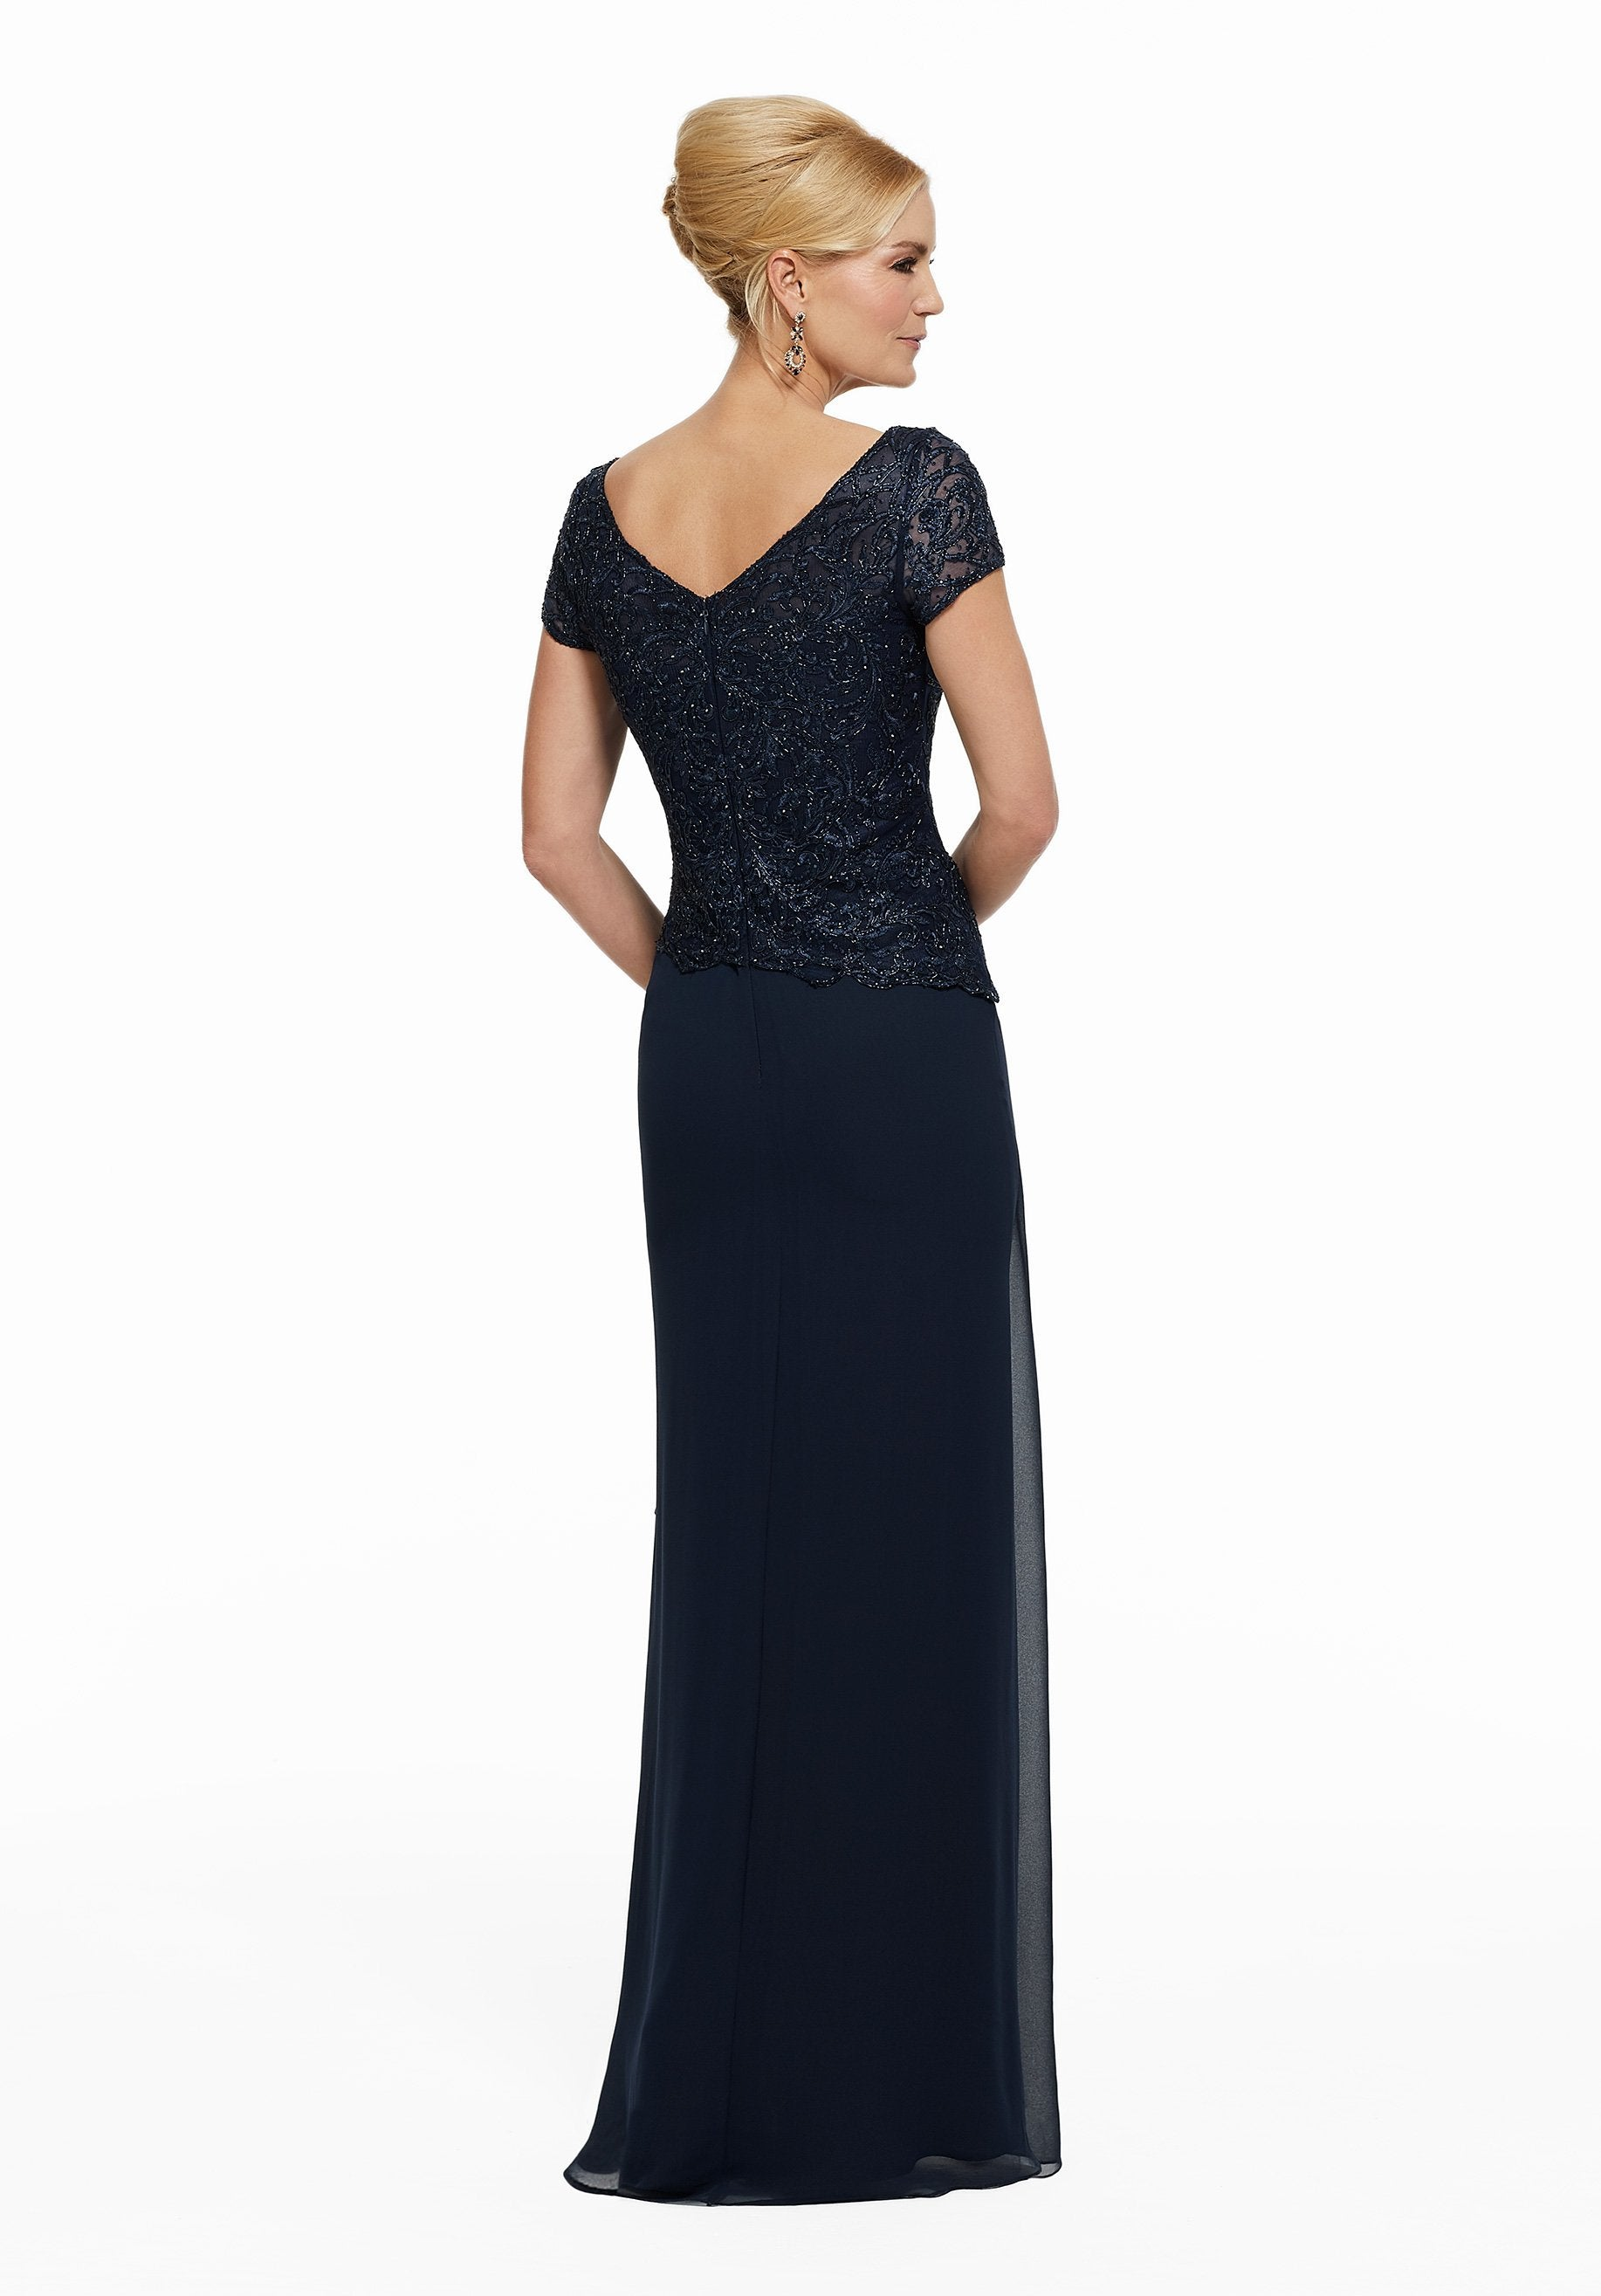 MGNY By Mori Lee - Beaded Lace V-Neck Sheath Evening Gown 72022SC In Blue